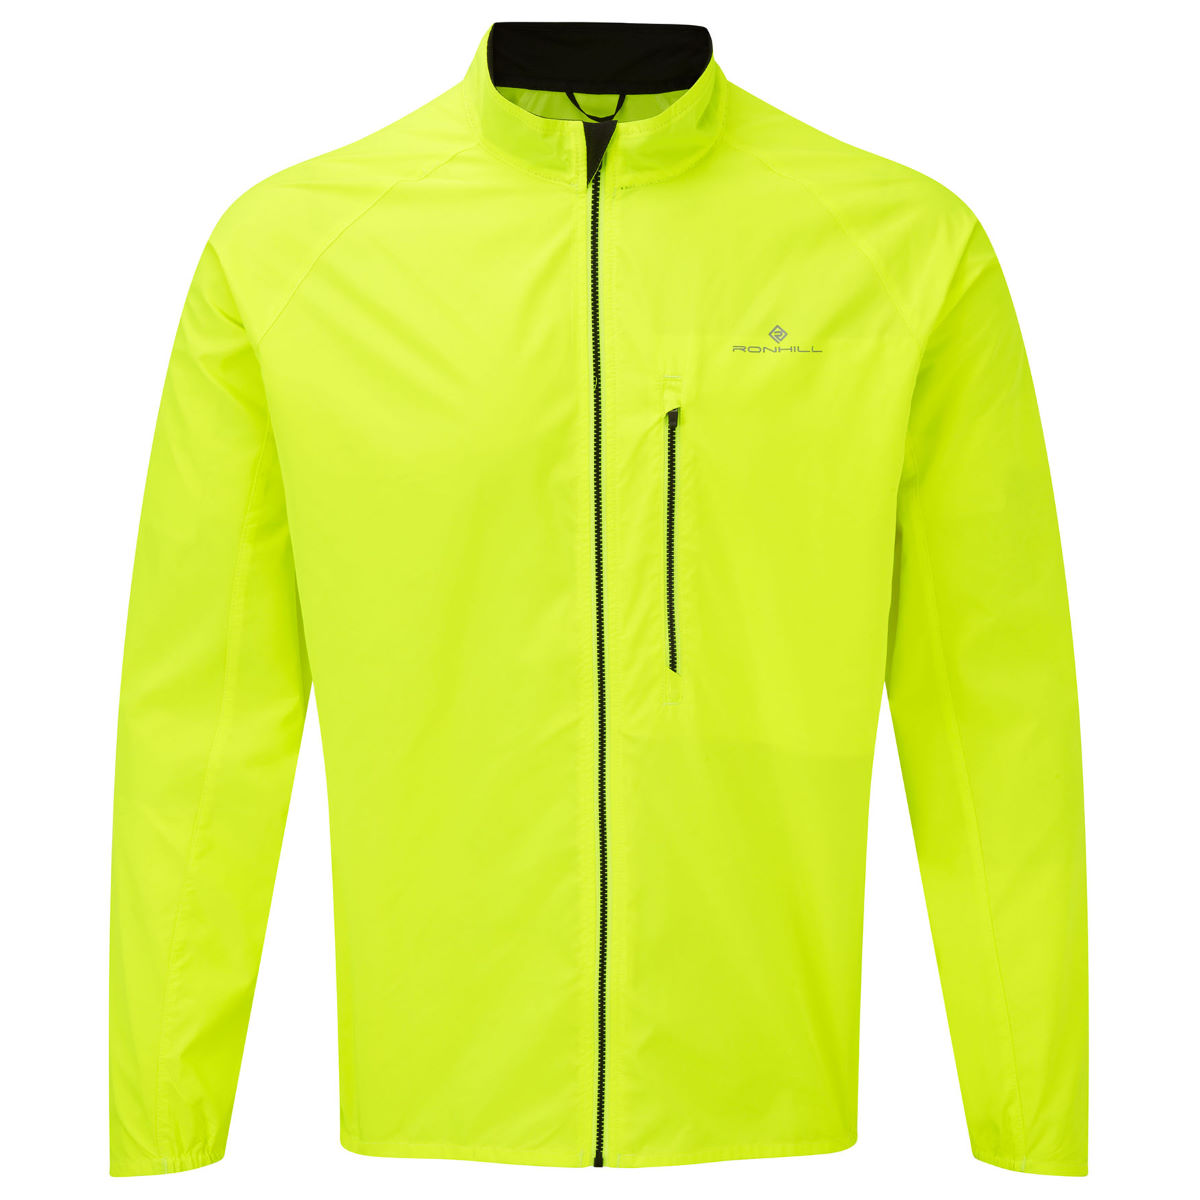 Ronhill Ronhill Everyday Jacket   Jackets